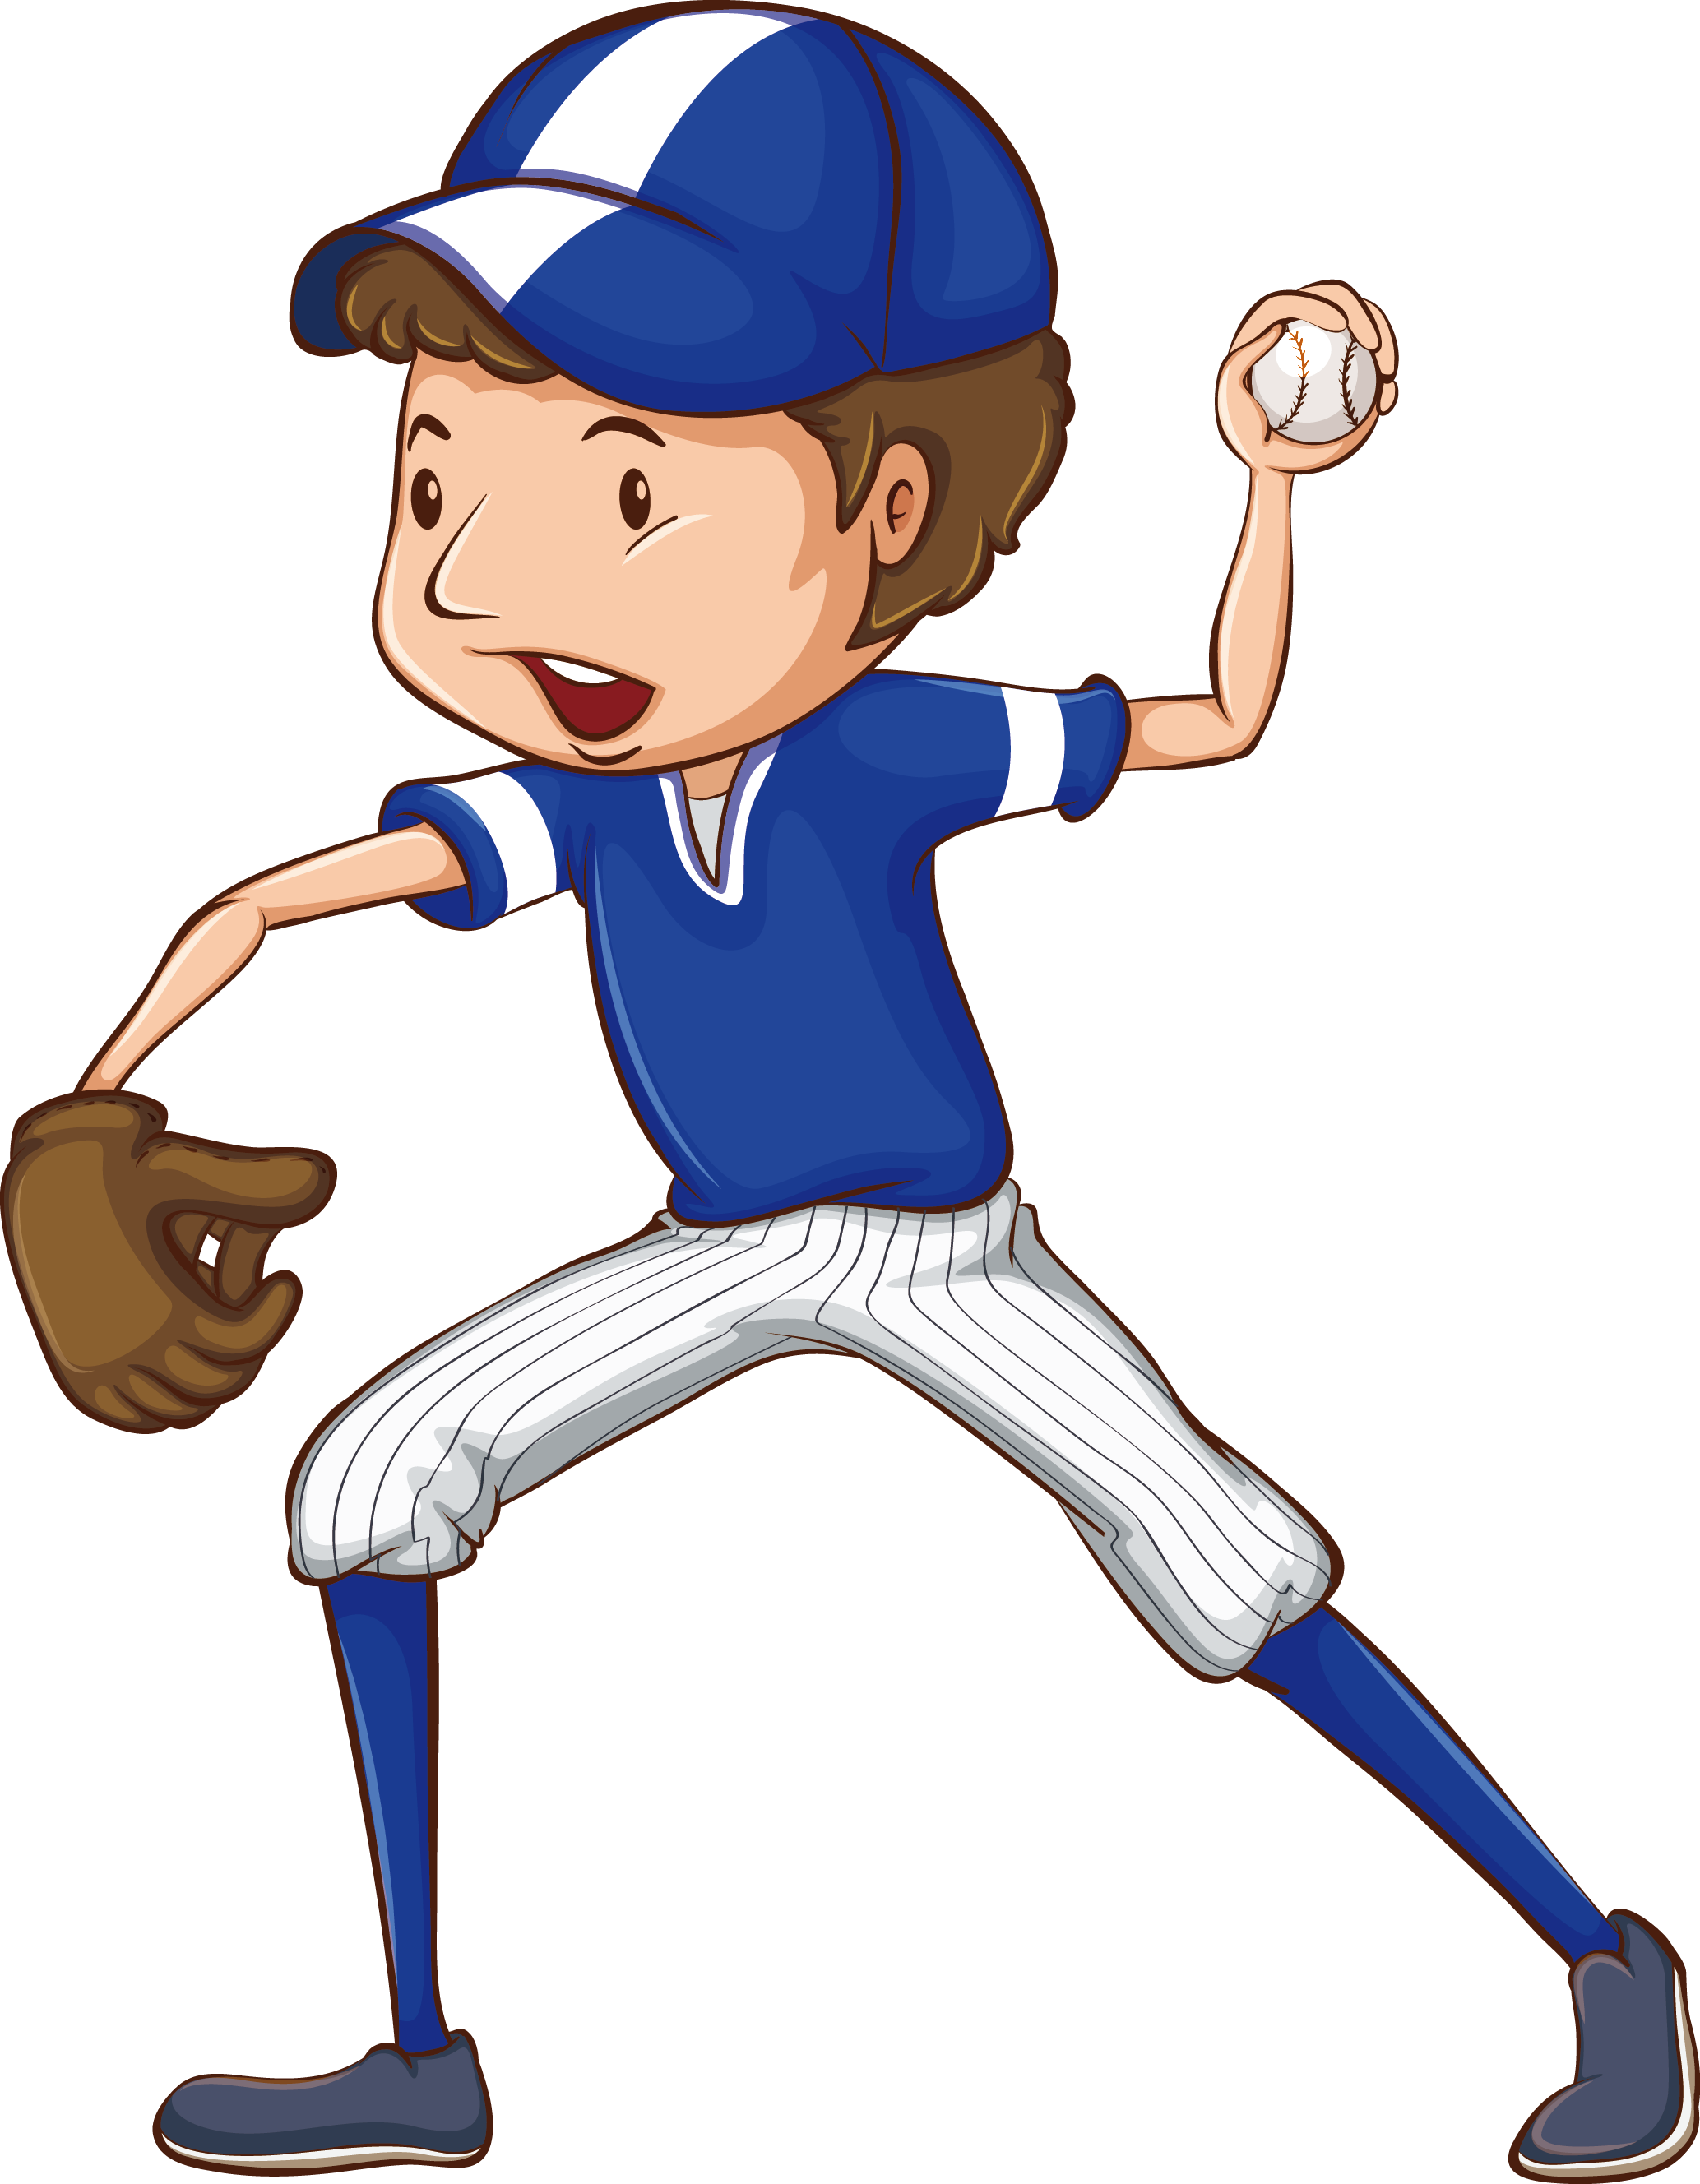 Baseball player throwing a ball clipart image royalty free stock Baseball Drawing Clip art - High school students baseball training ... image royalty free stock